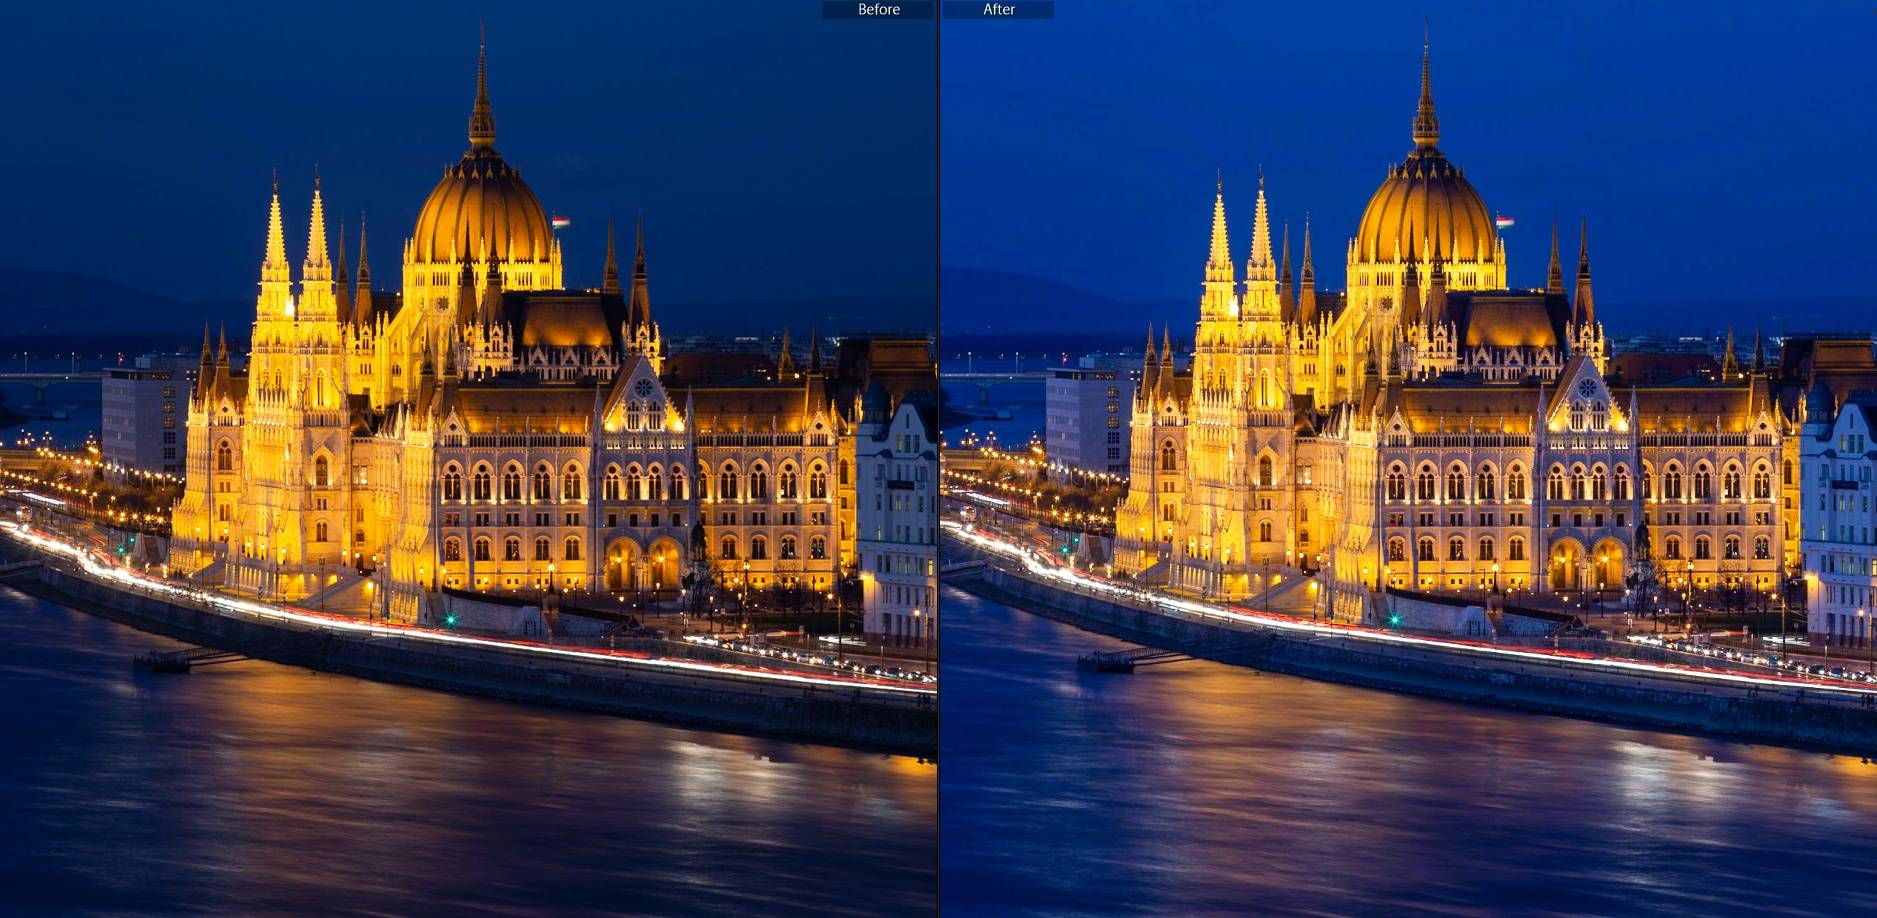 Blue Hour preset for Lightroom